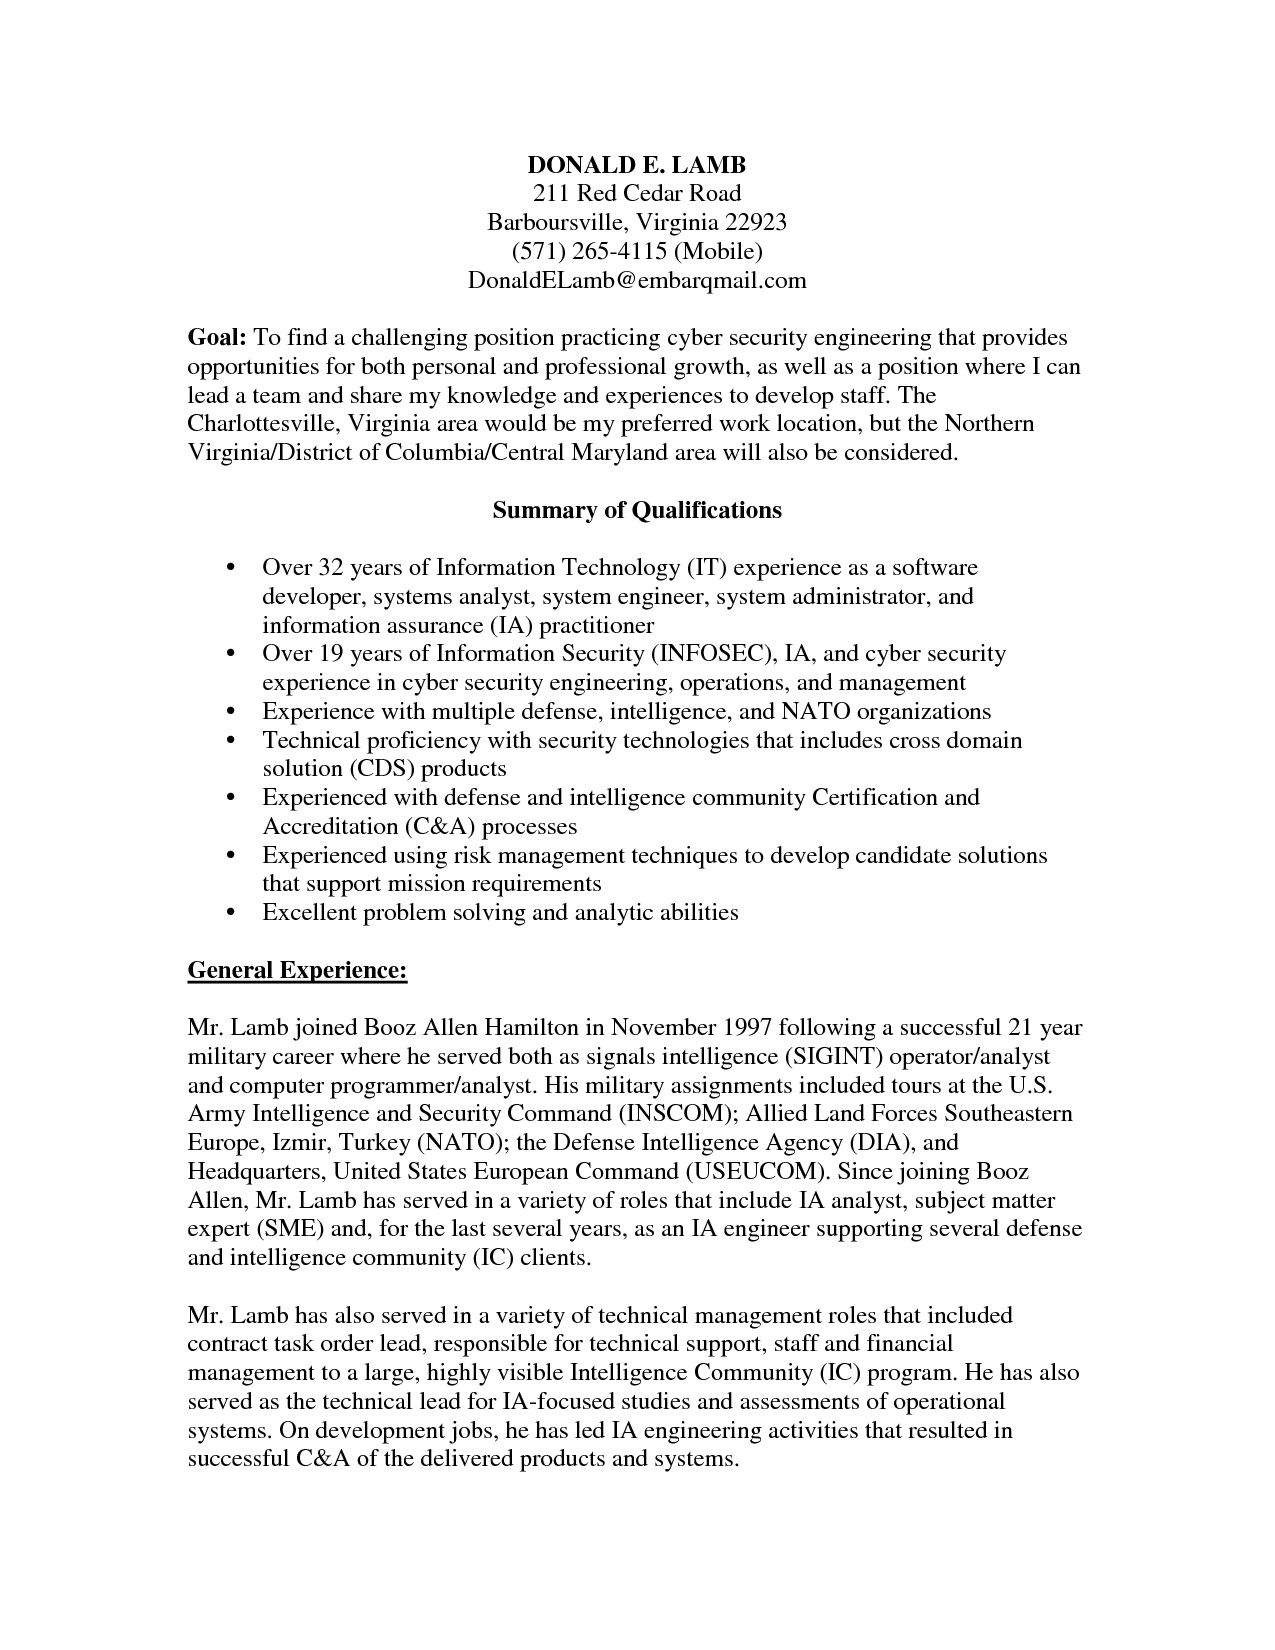 Information Security Analyst Resume 8 9 Information Security Resumes Security Resume Business Analyst Resume Resume Template Examples